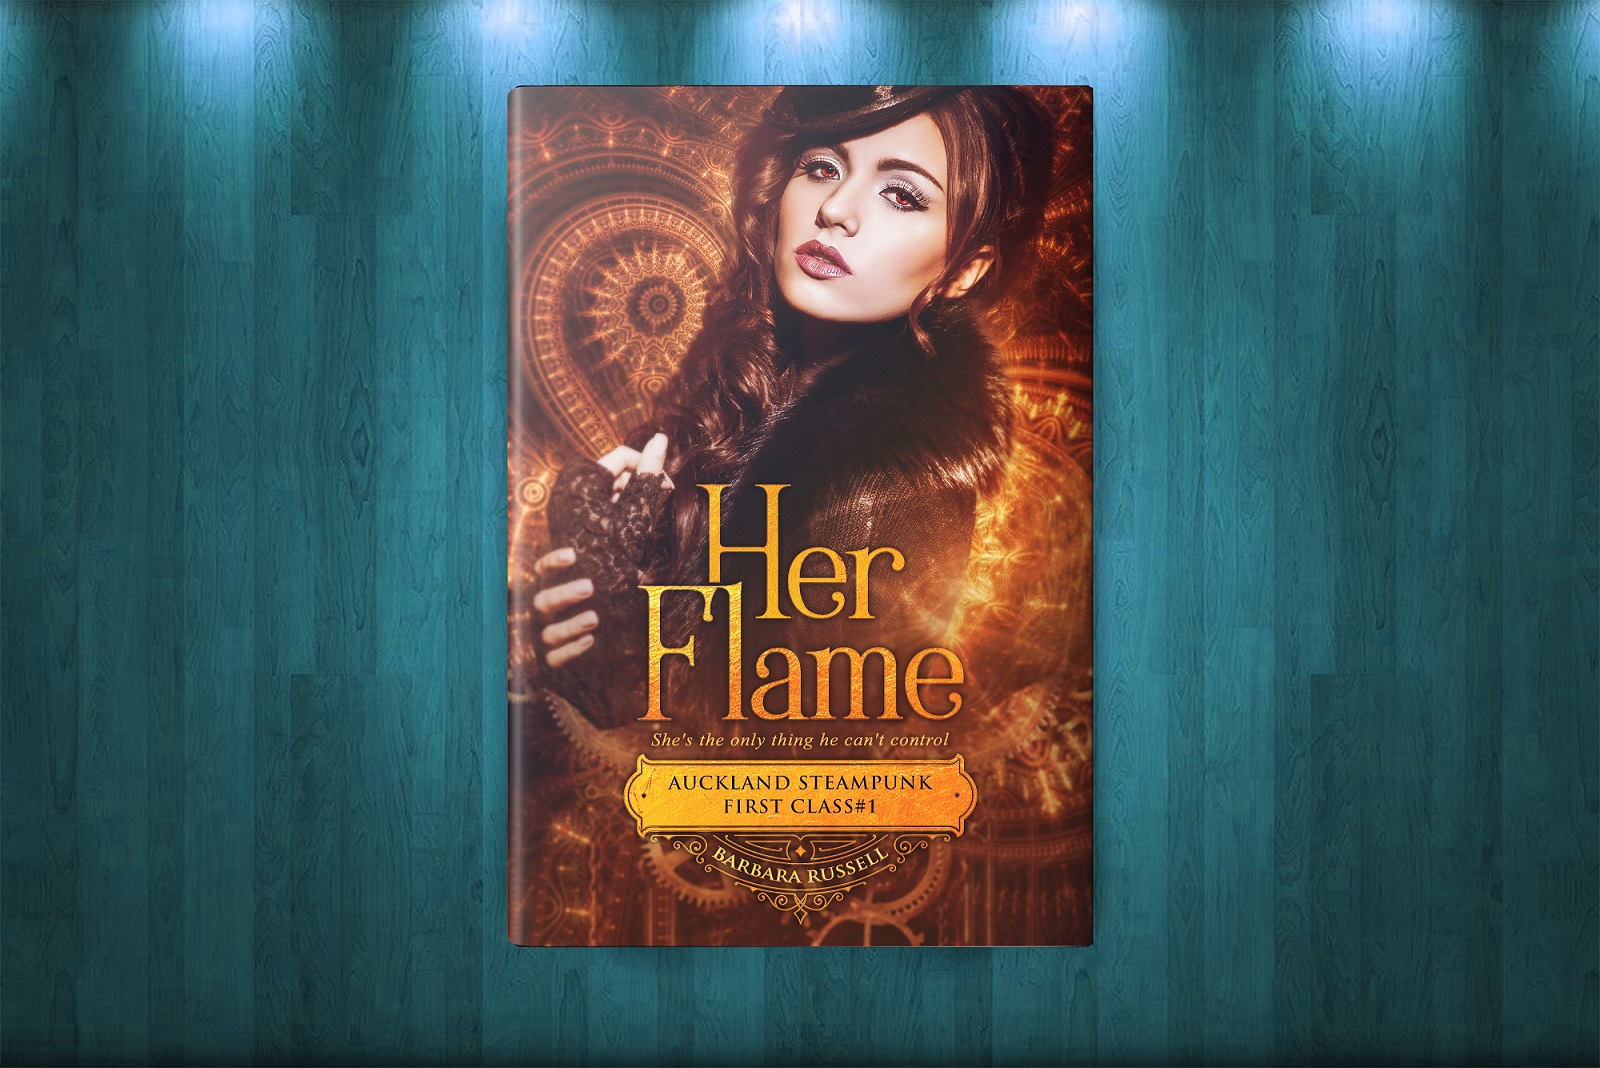 Her Flame — Auckland Steampunk First Class #1 by Barbara Russell